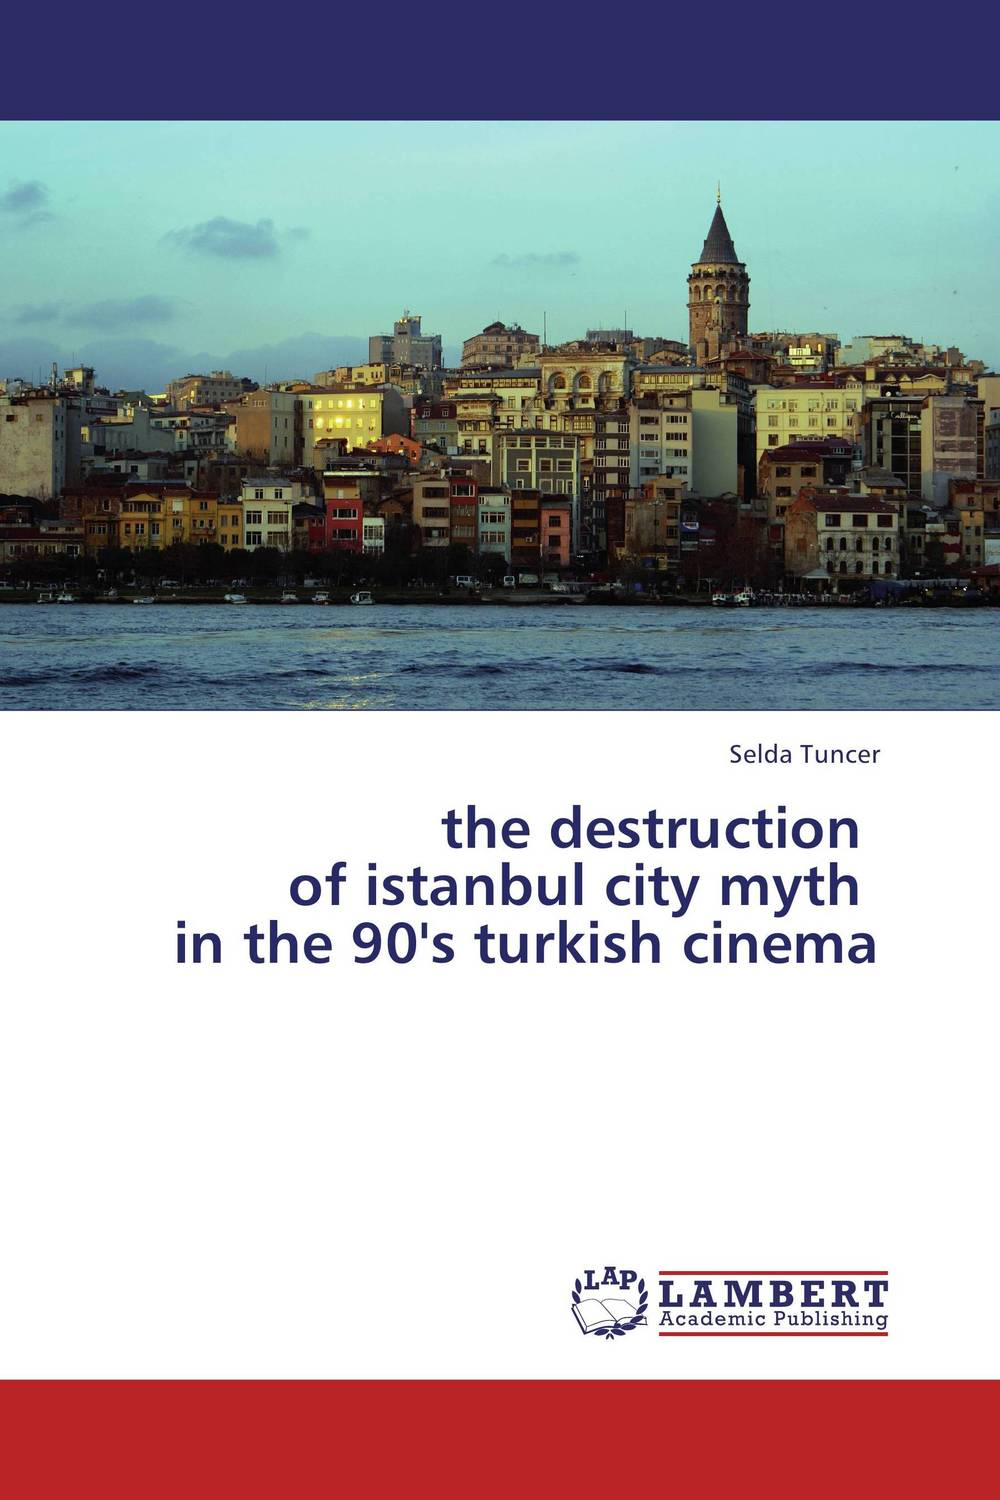 the destruction   of istanbul city myth   in the 90's turkish cinema the destruction of tilted arc – documents